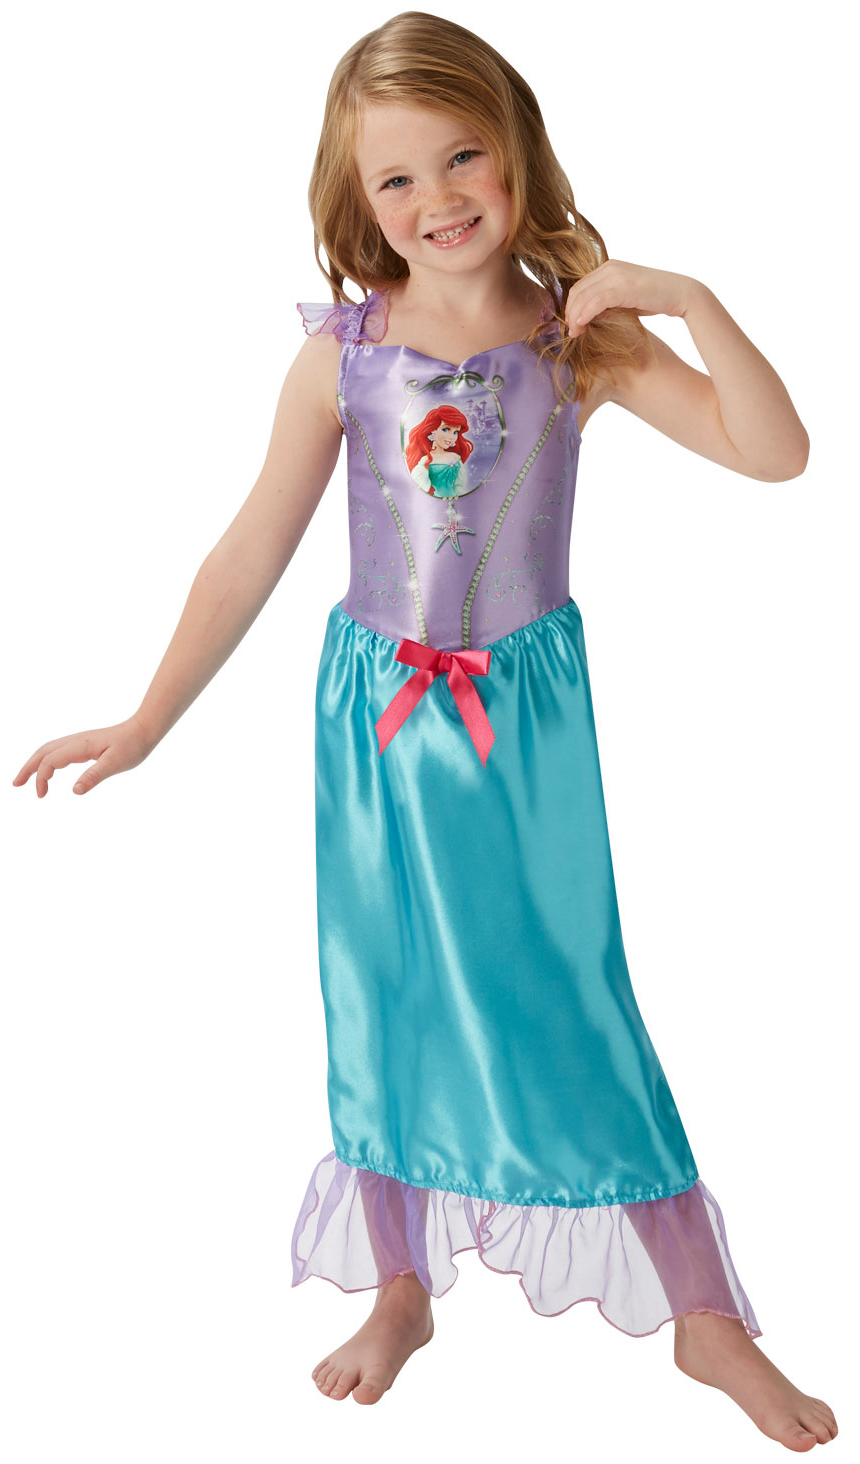 Fairytale Ariel Girls Costume  sc 1 st  Mega Fancy Dress & Fairytale Ariel Girls Costume | Letter